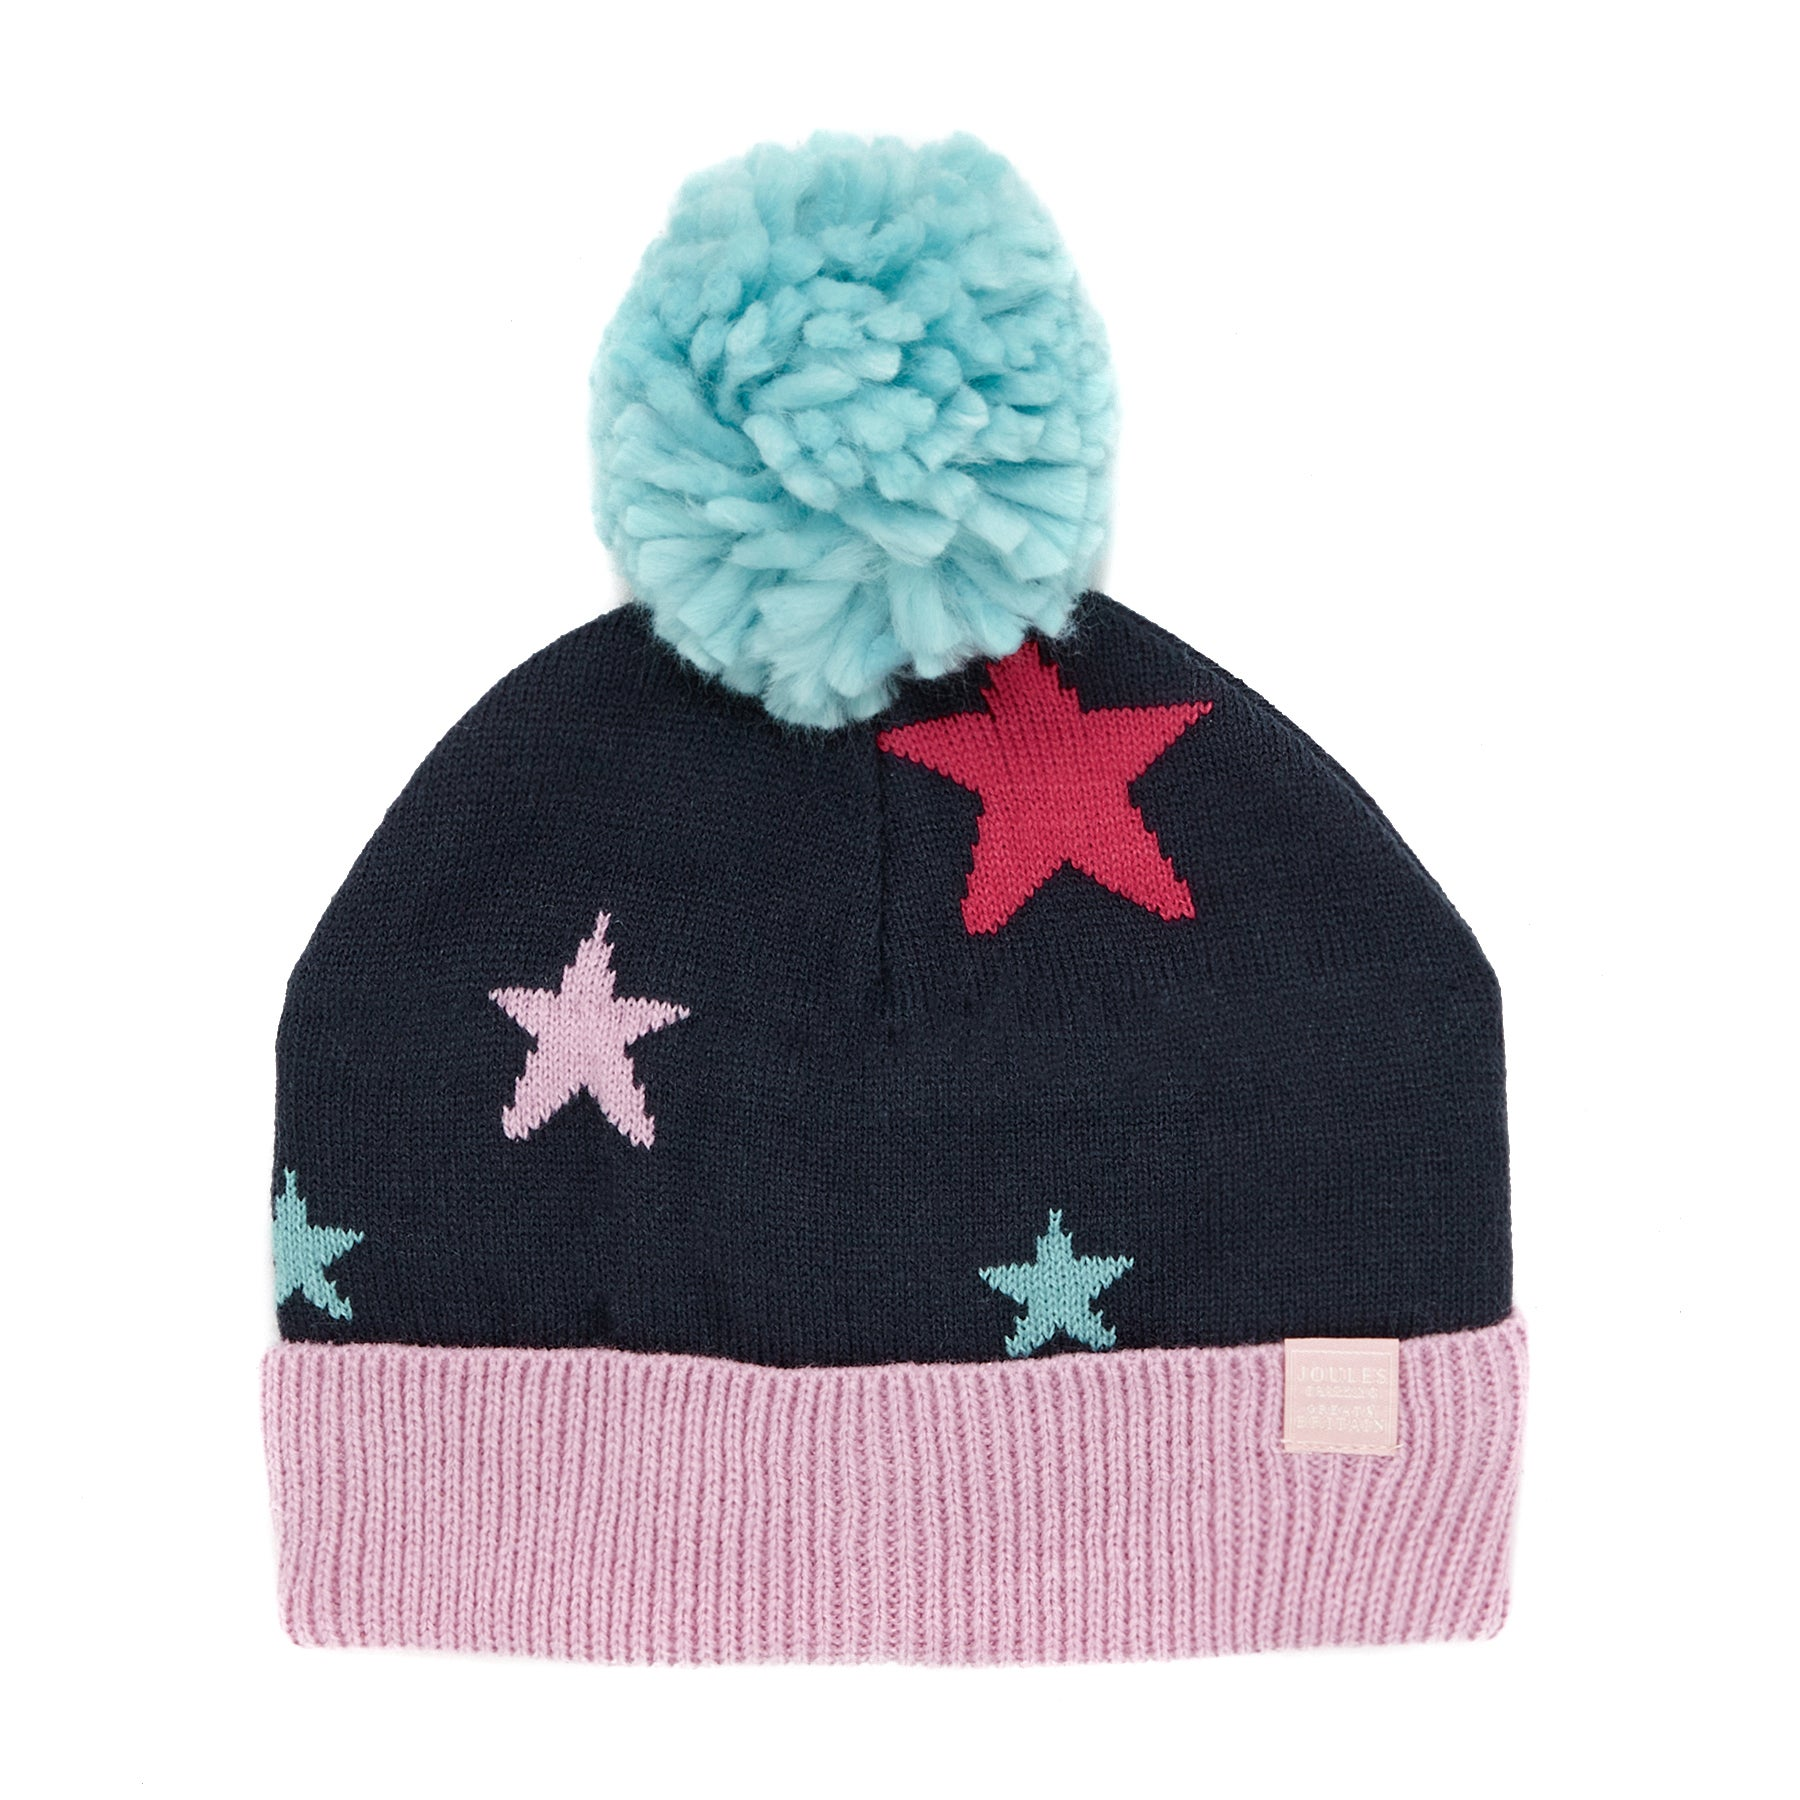 647acd61085 Joules Halley Intarsia Oversized Pom-pom Girls Beanie available from ...